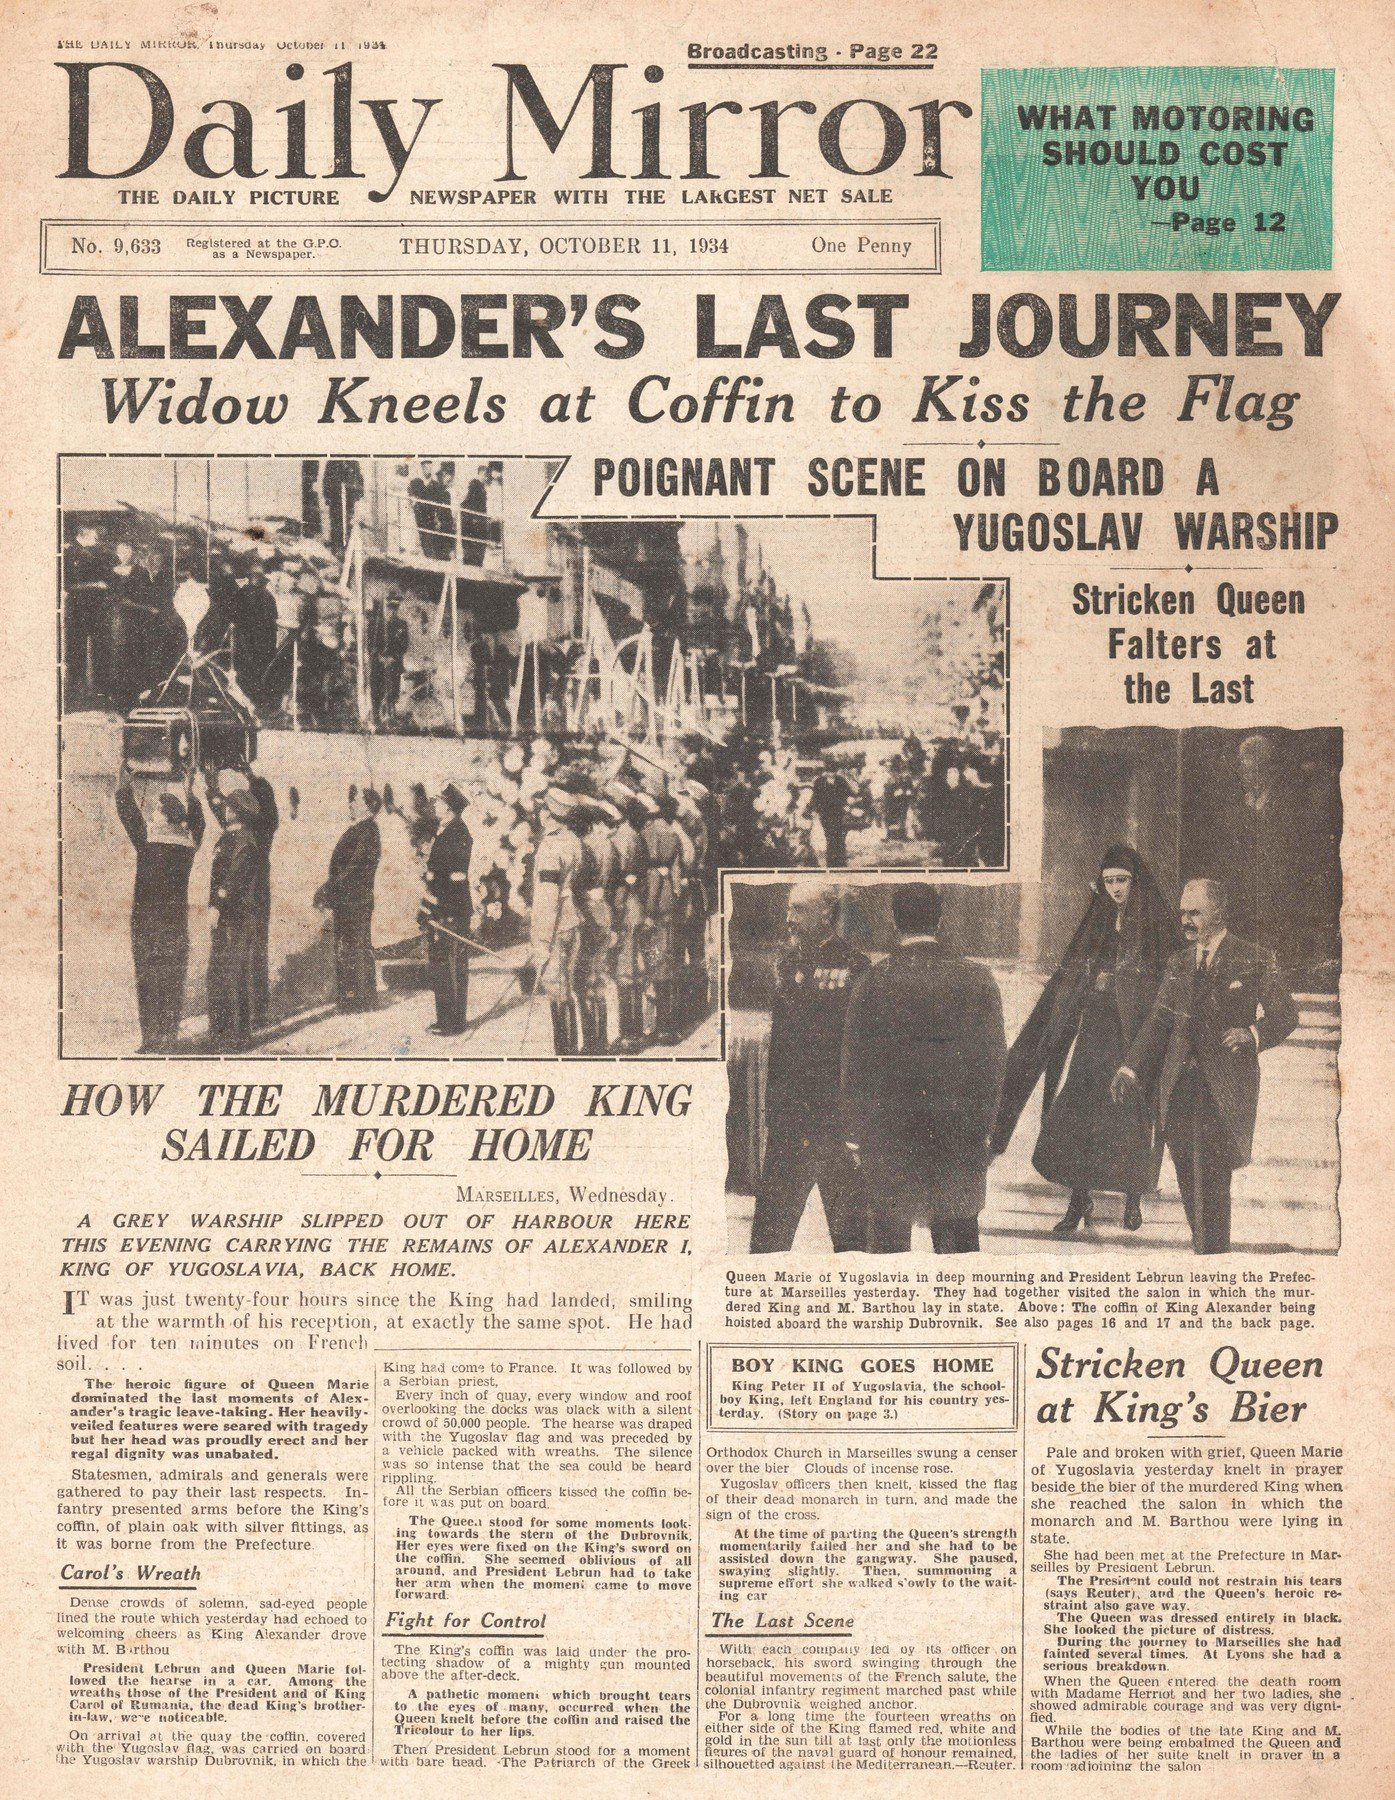 1934 Daily Mirror Assassination of King Alexander of Yugoslavia, Image: 318253588, License: Rights-managed, Restrictions: , Model Release: no, Credit line: Profimedia, Alamy